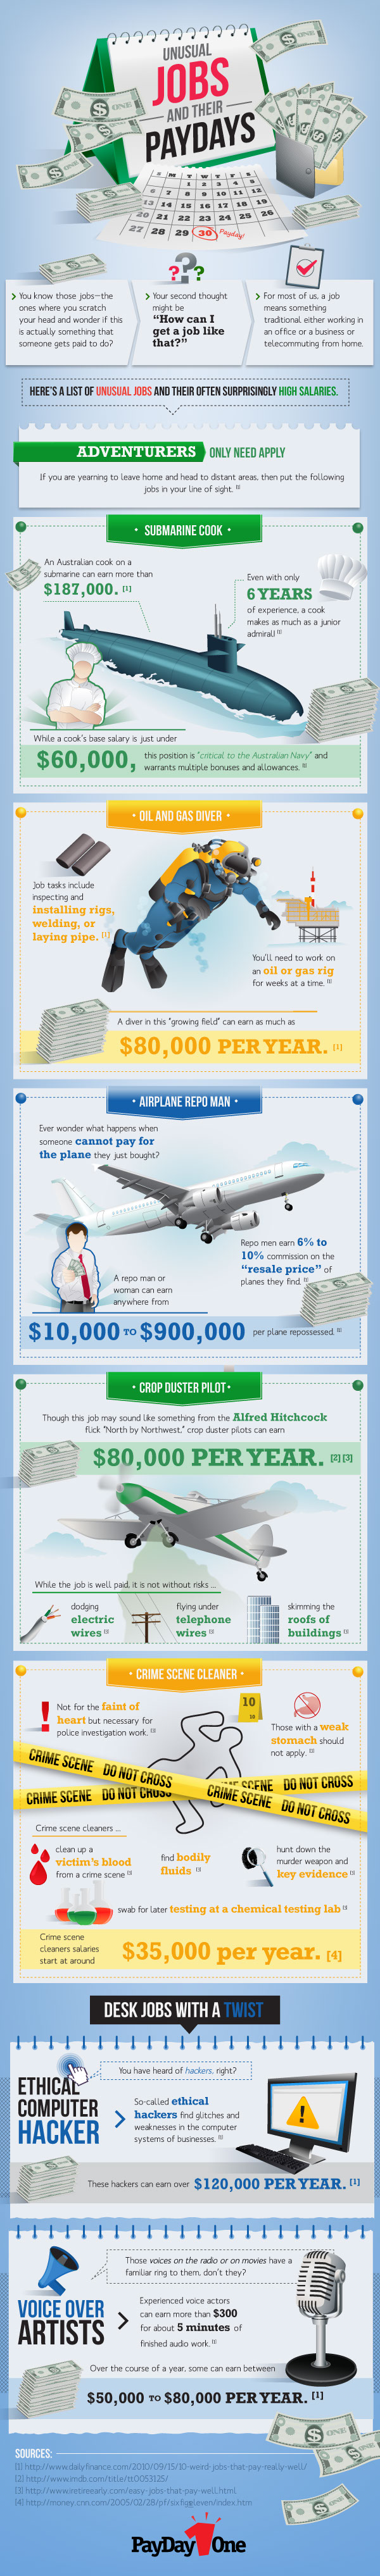 Unusual-Jobs-And-Their-Paydays-infographic